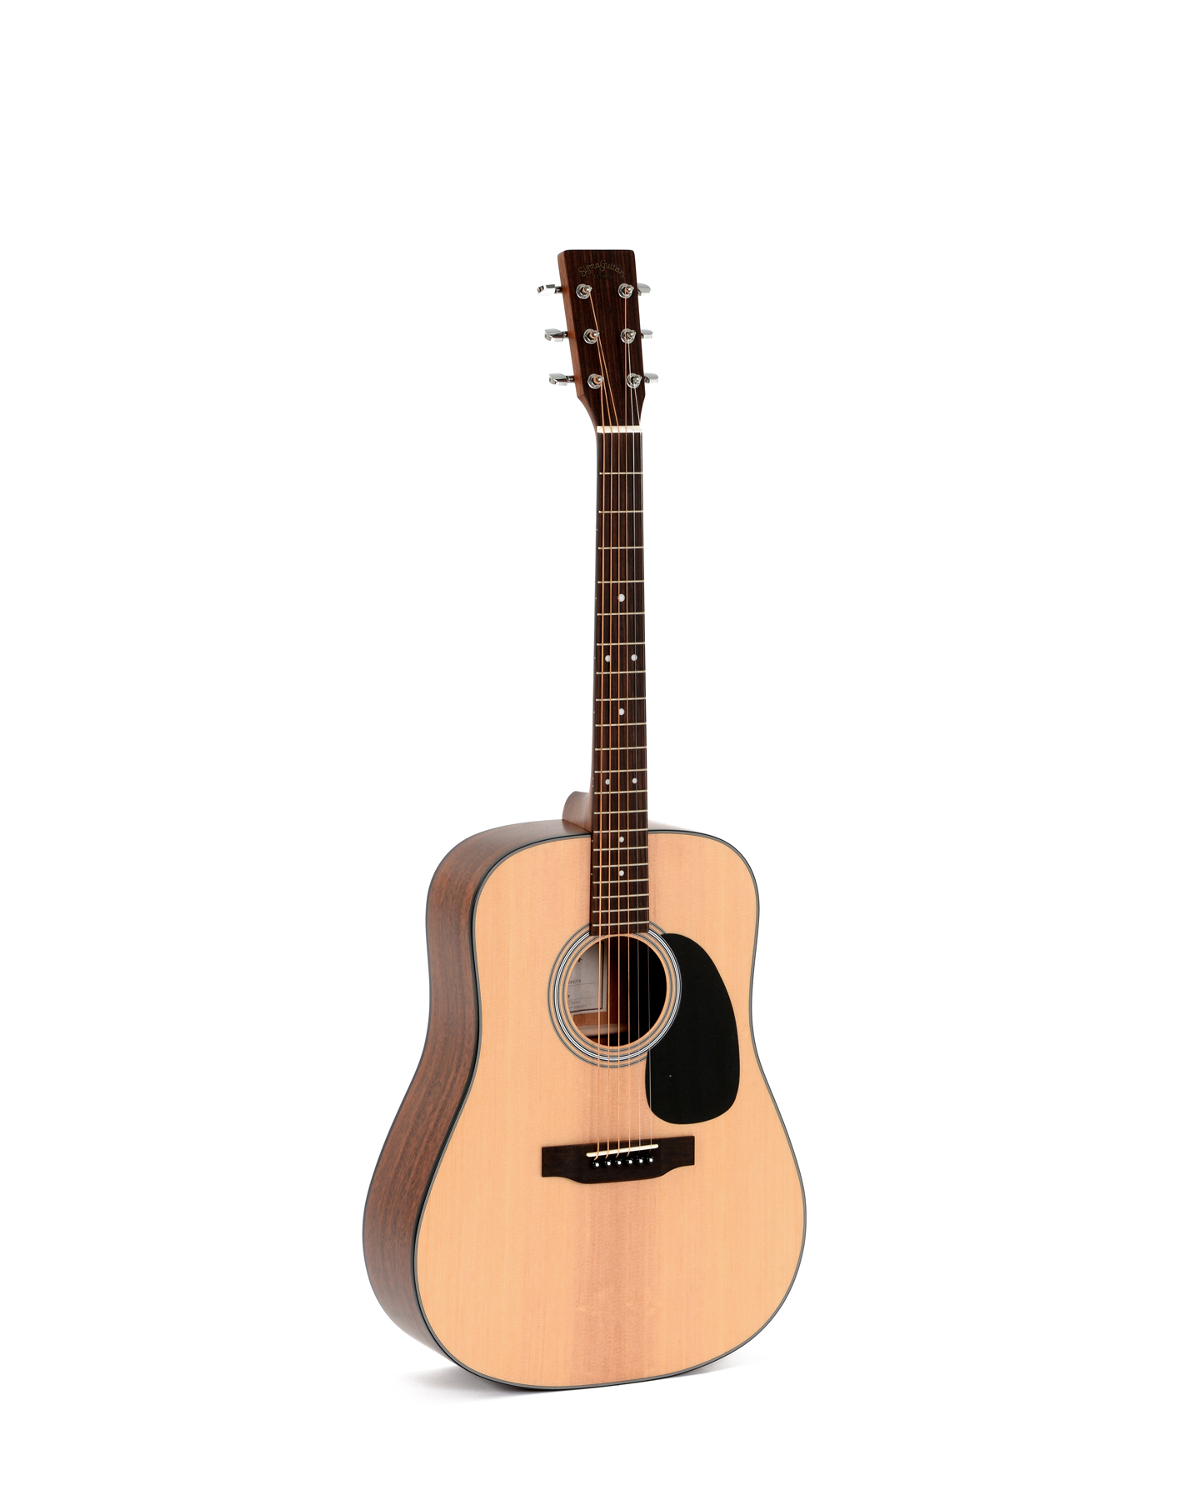 Sigma SDM-ST Dreadnought Acoustic Guitar With Sigma GIG BAG